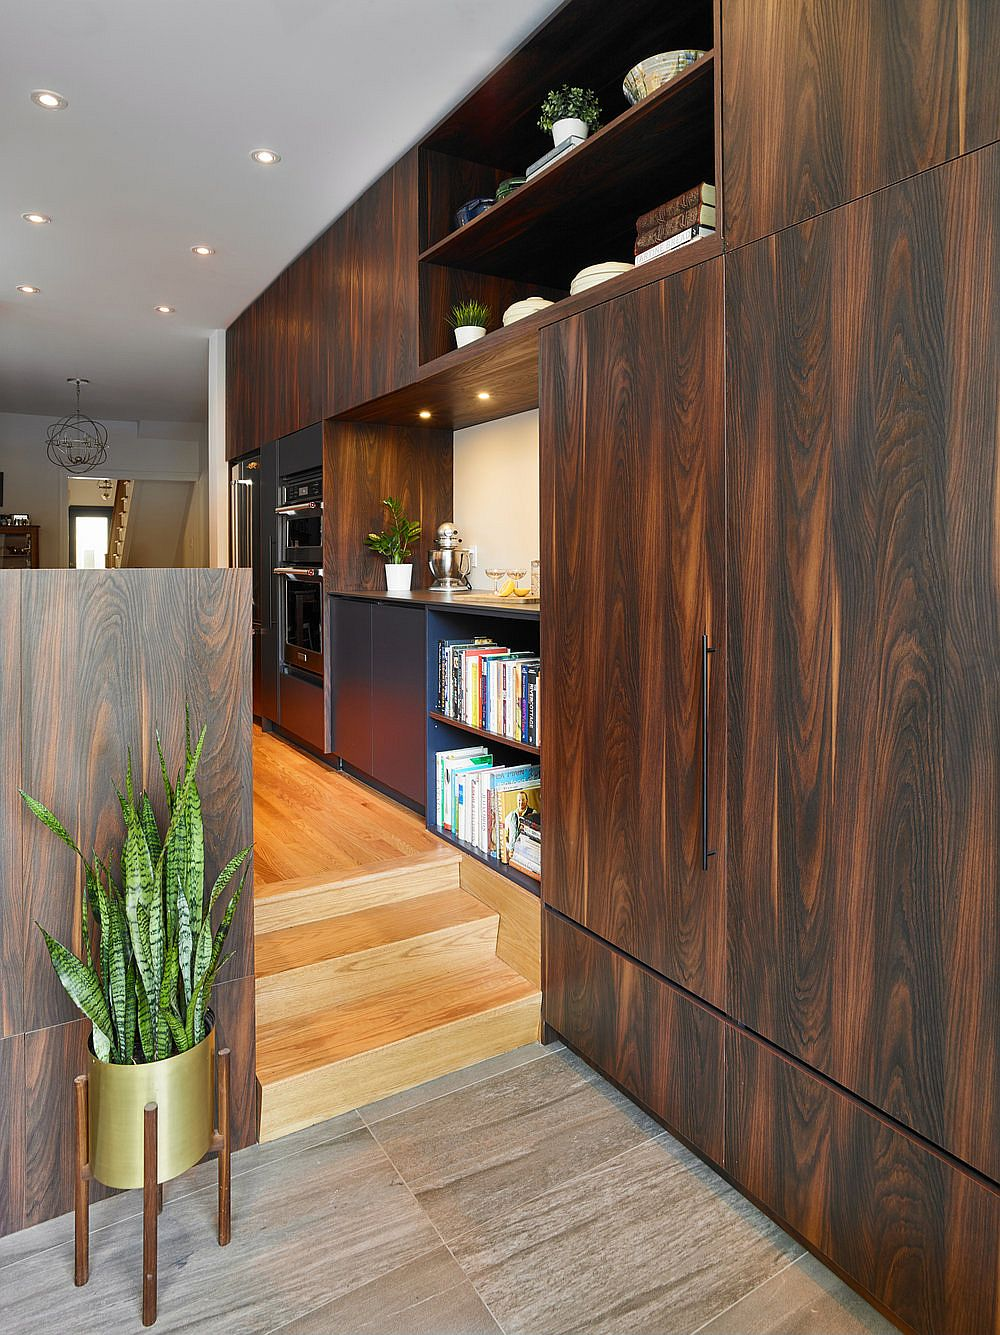 Moving-away-internal-partitions-and-clearing-space-for-a-more-modern-interior-71105